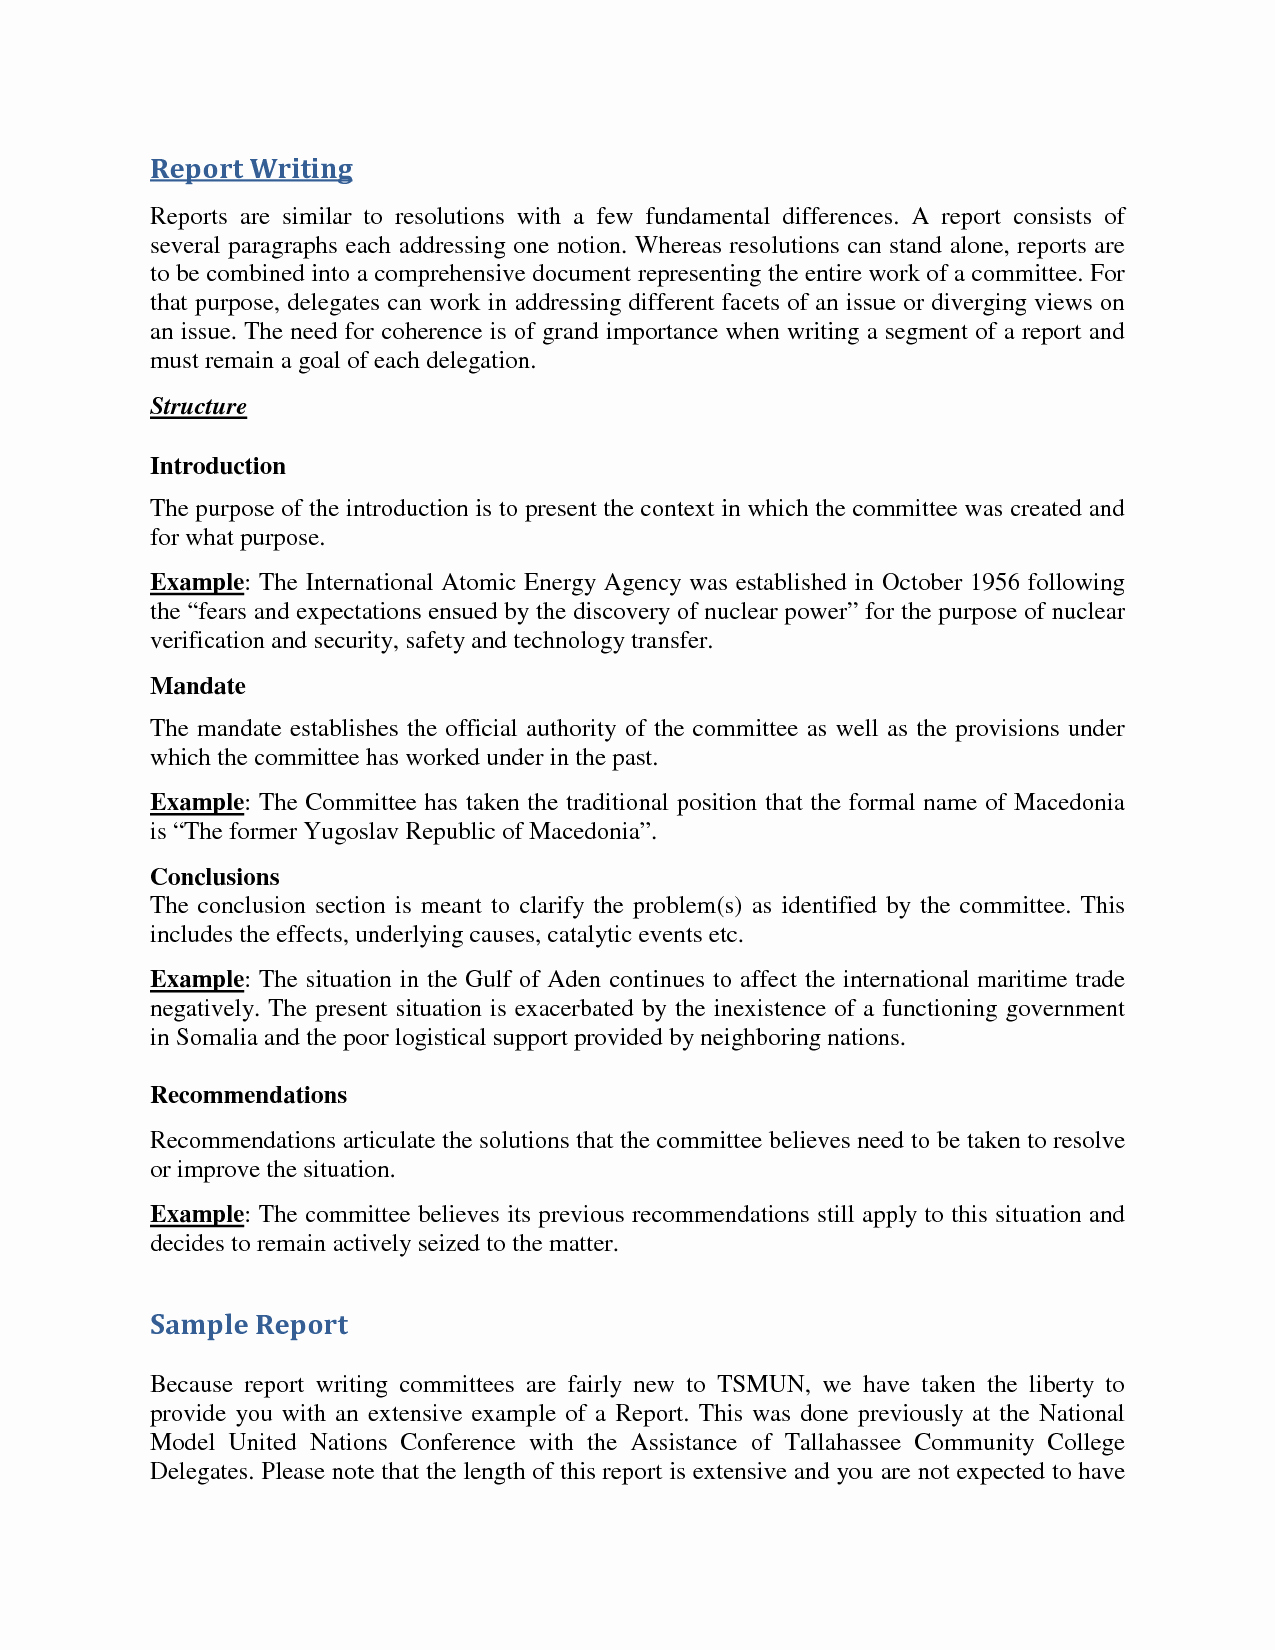 Report Writing Template New Business Report Writing Example Pdf to Print